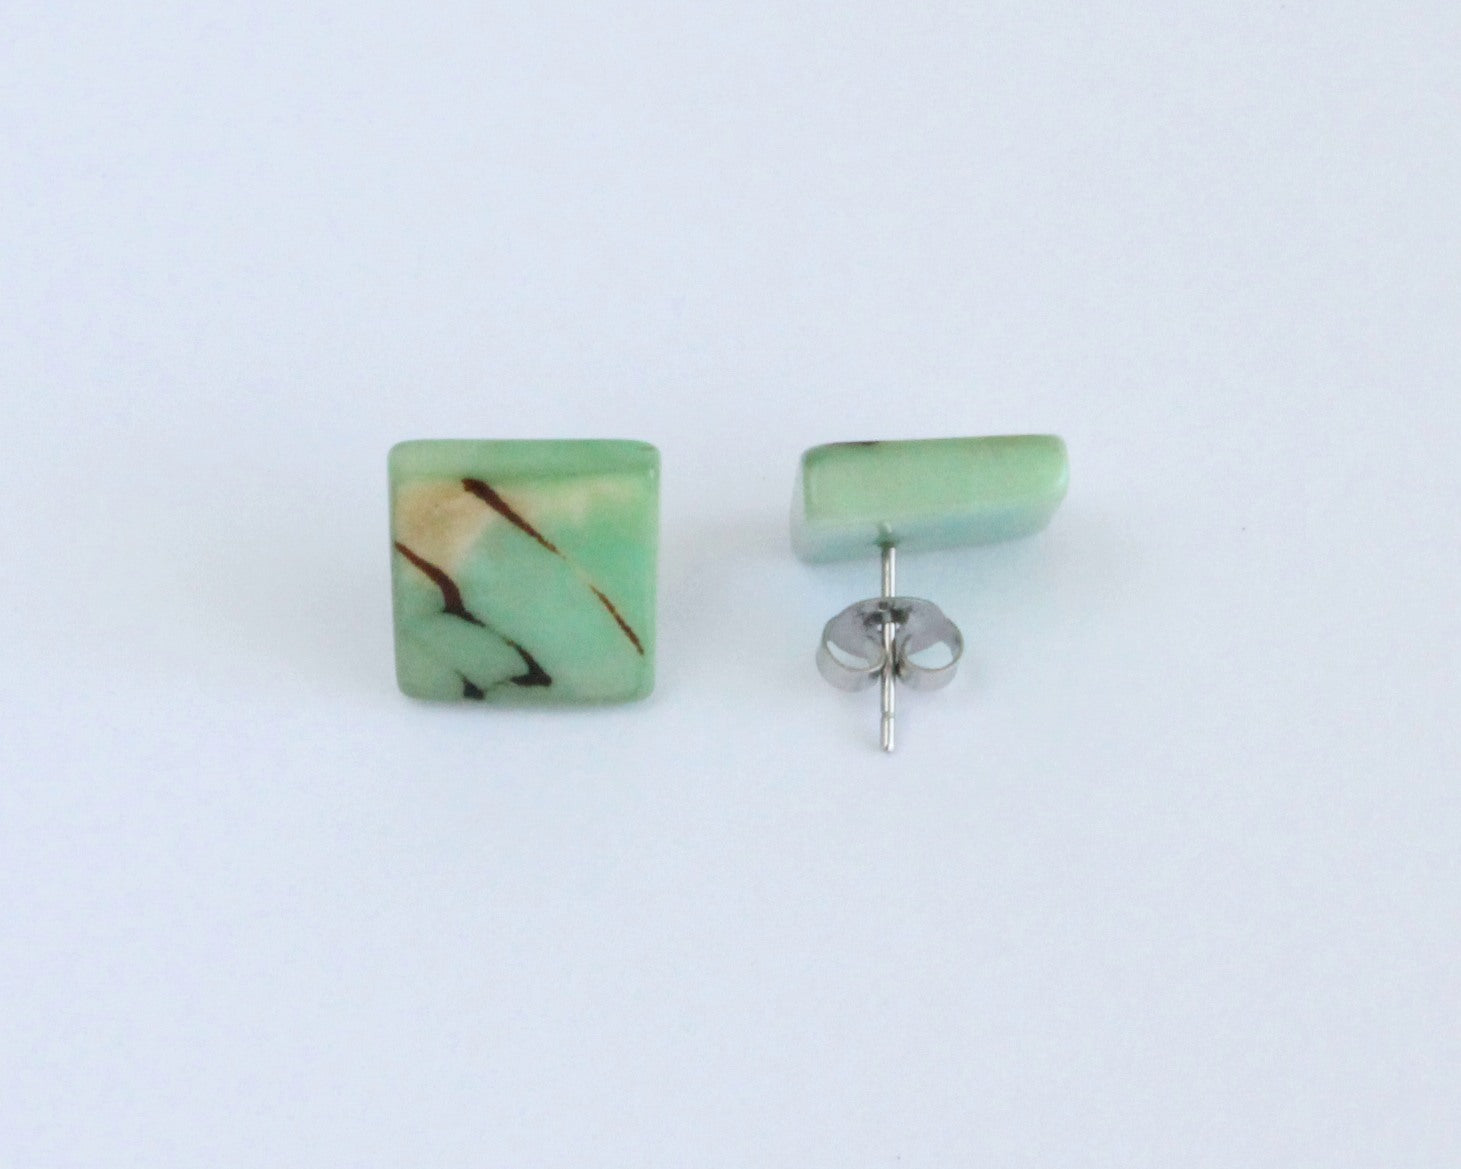 Handmade earring, sustainable, tagua, stud, push back, green back